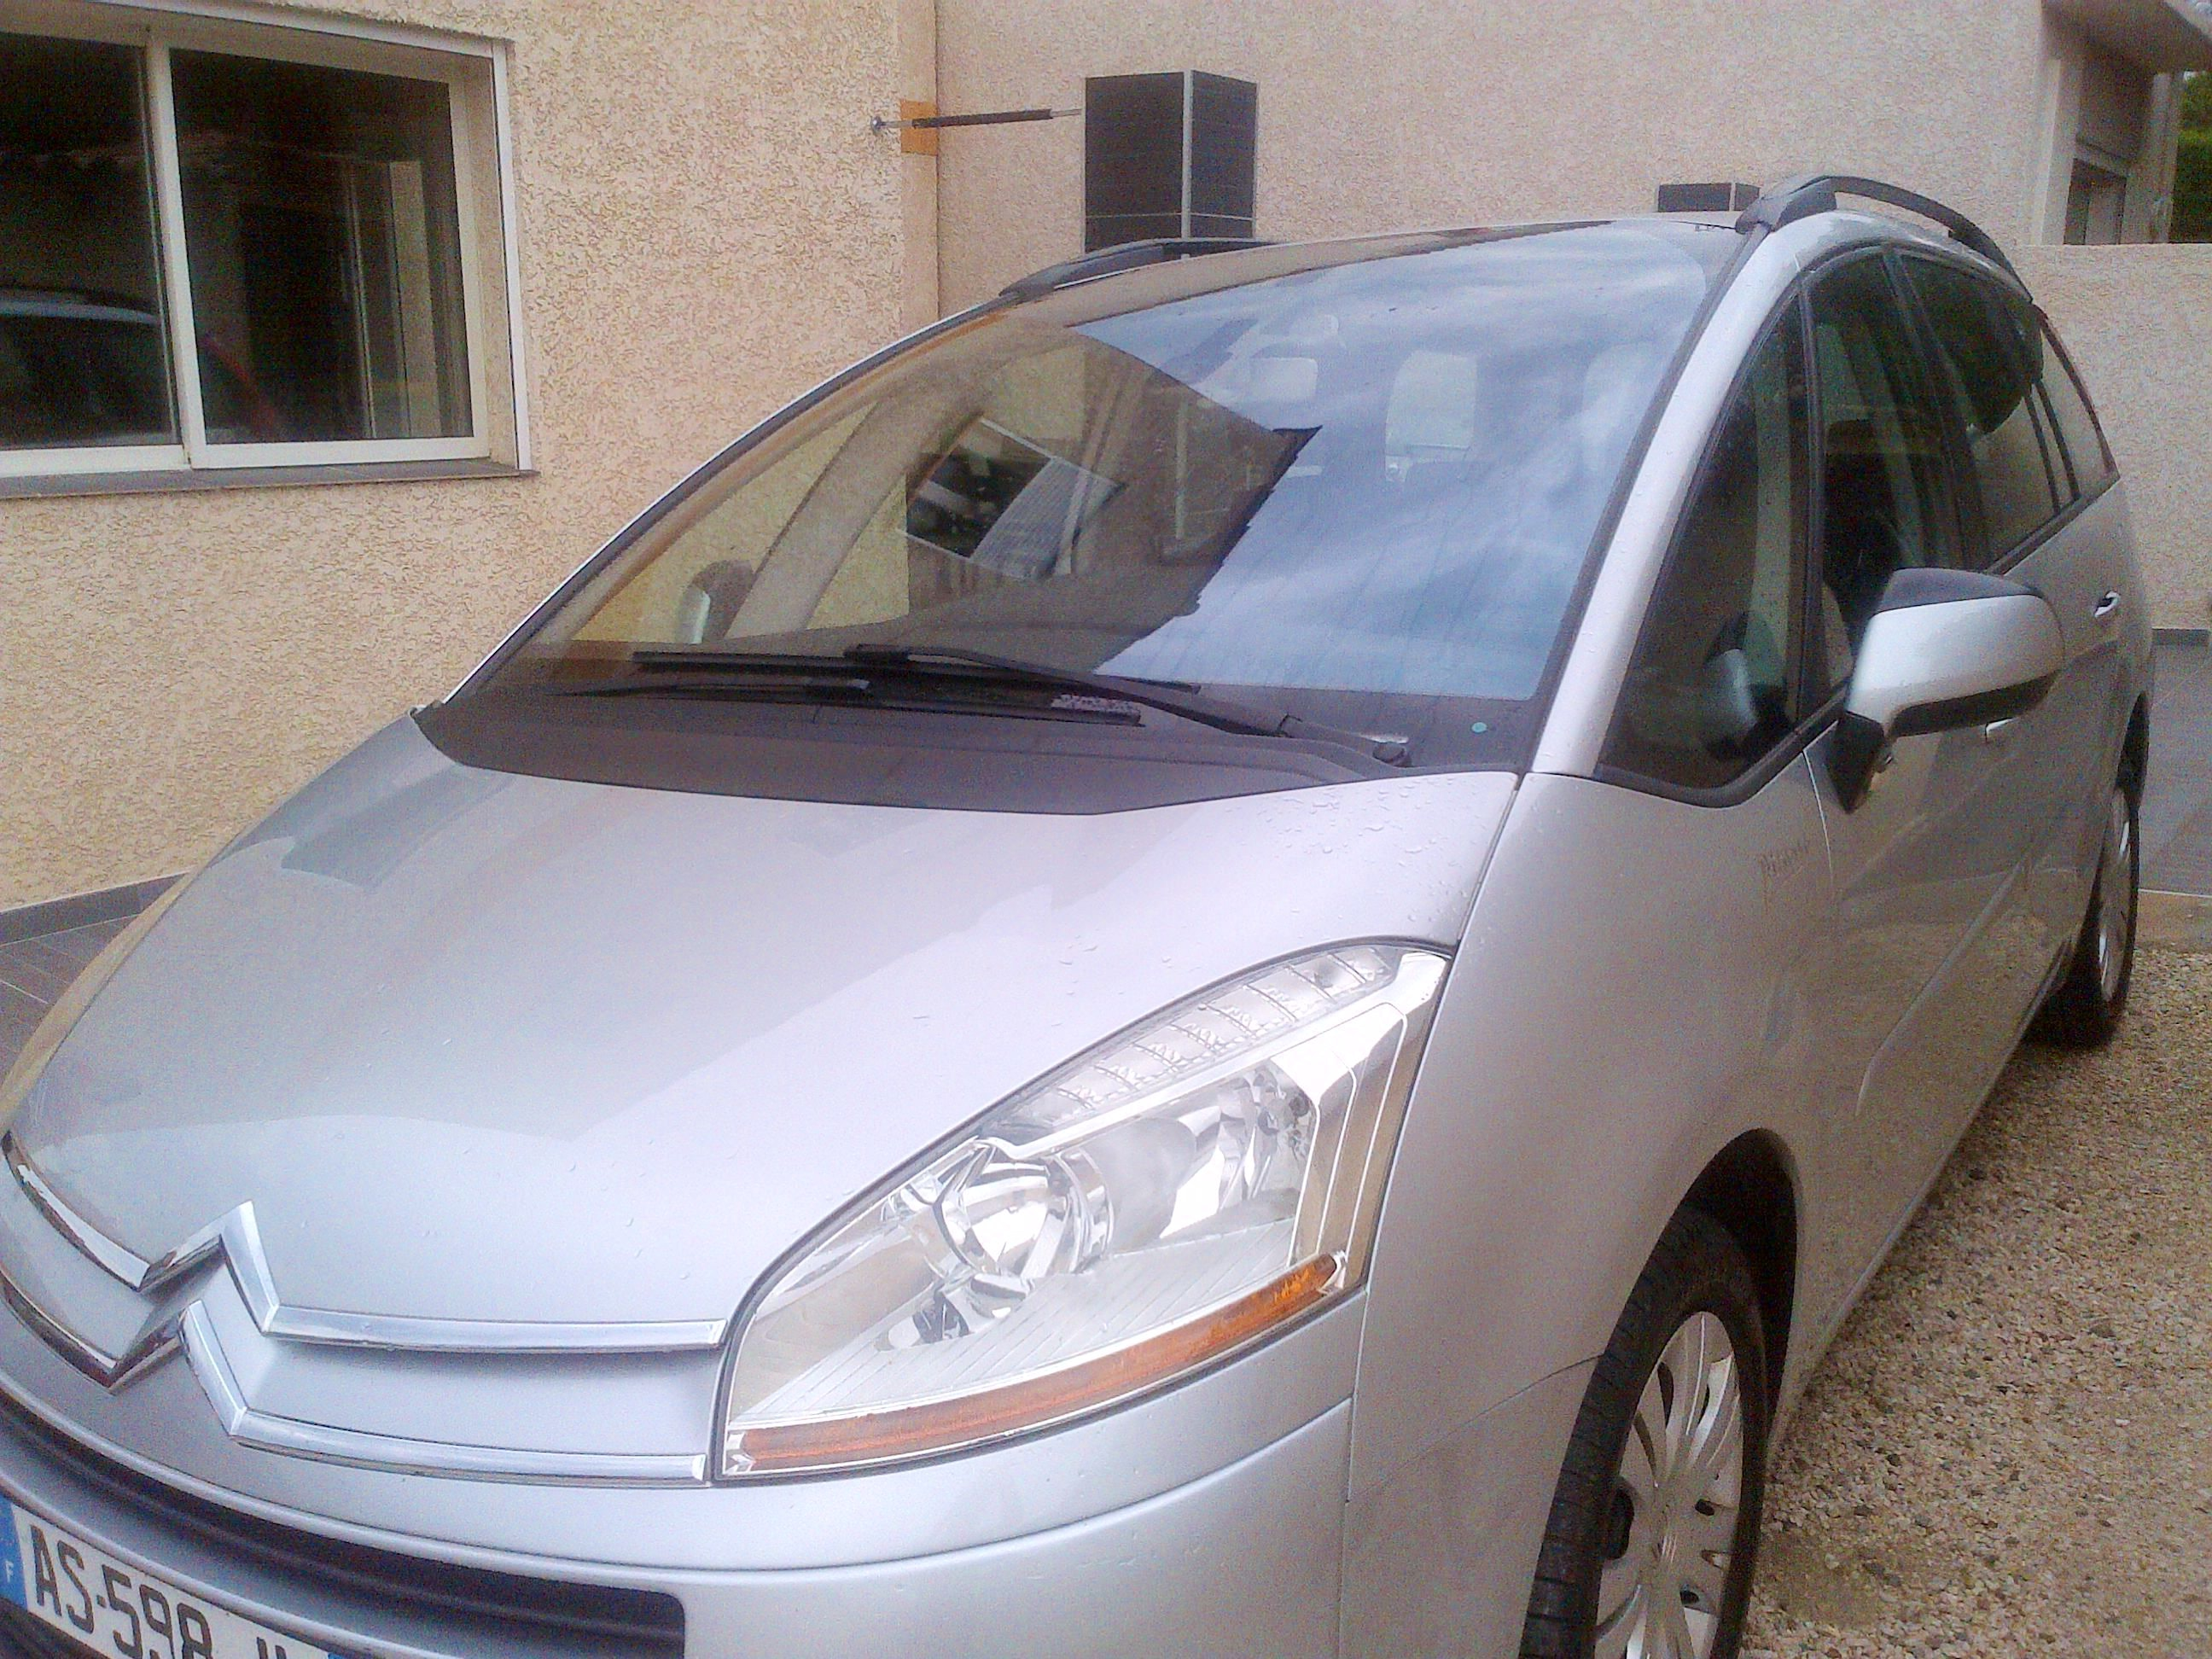 CITROËN, C4 Grand Picasso  1.6 HDi 110cv , 2010, Diesel, 7 places